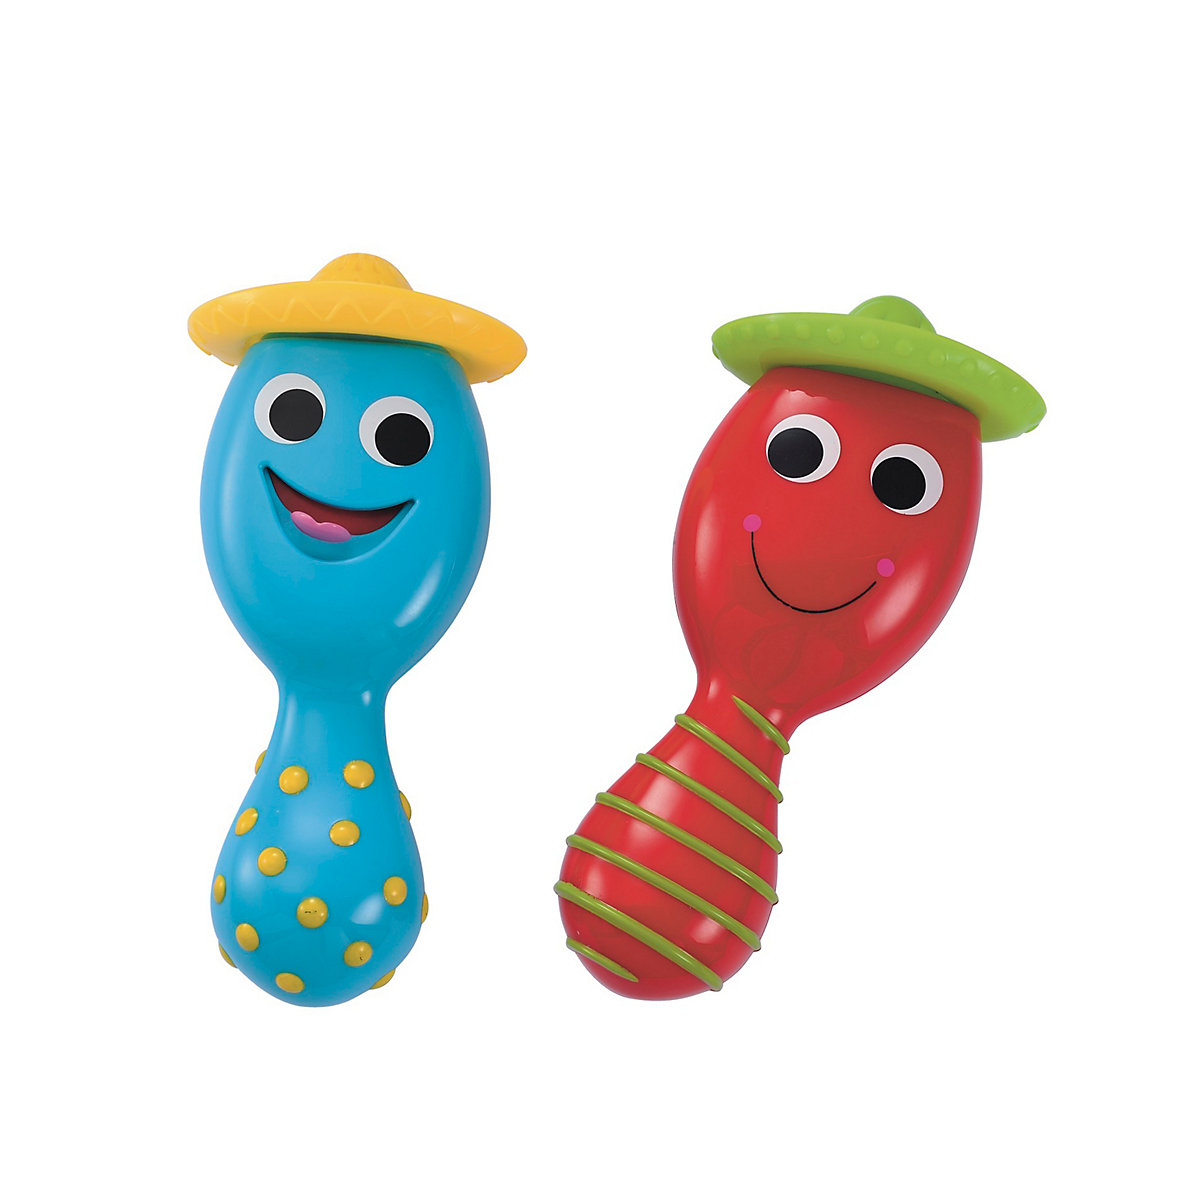 New ELC Boys and Girls Fun Singing Maracas Toy From 6 months - Toy Gifts